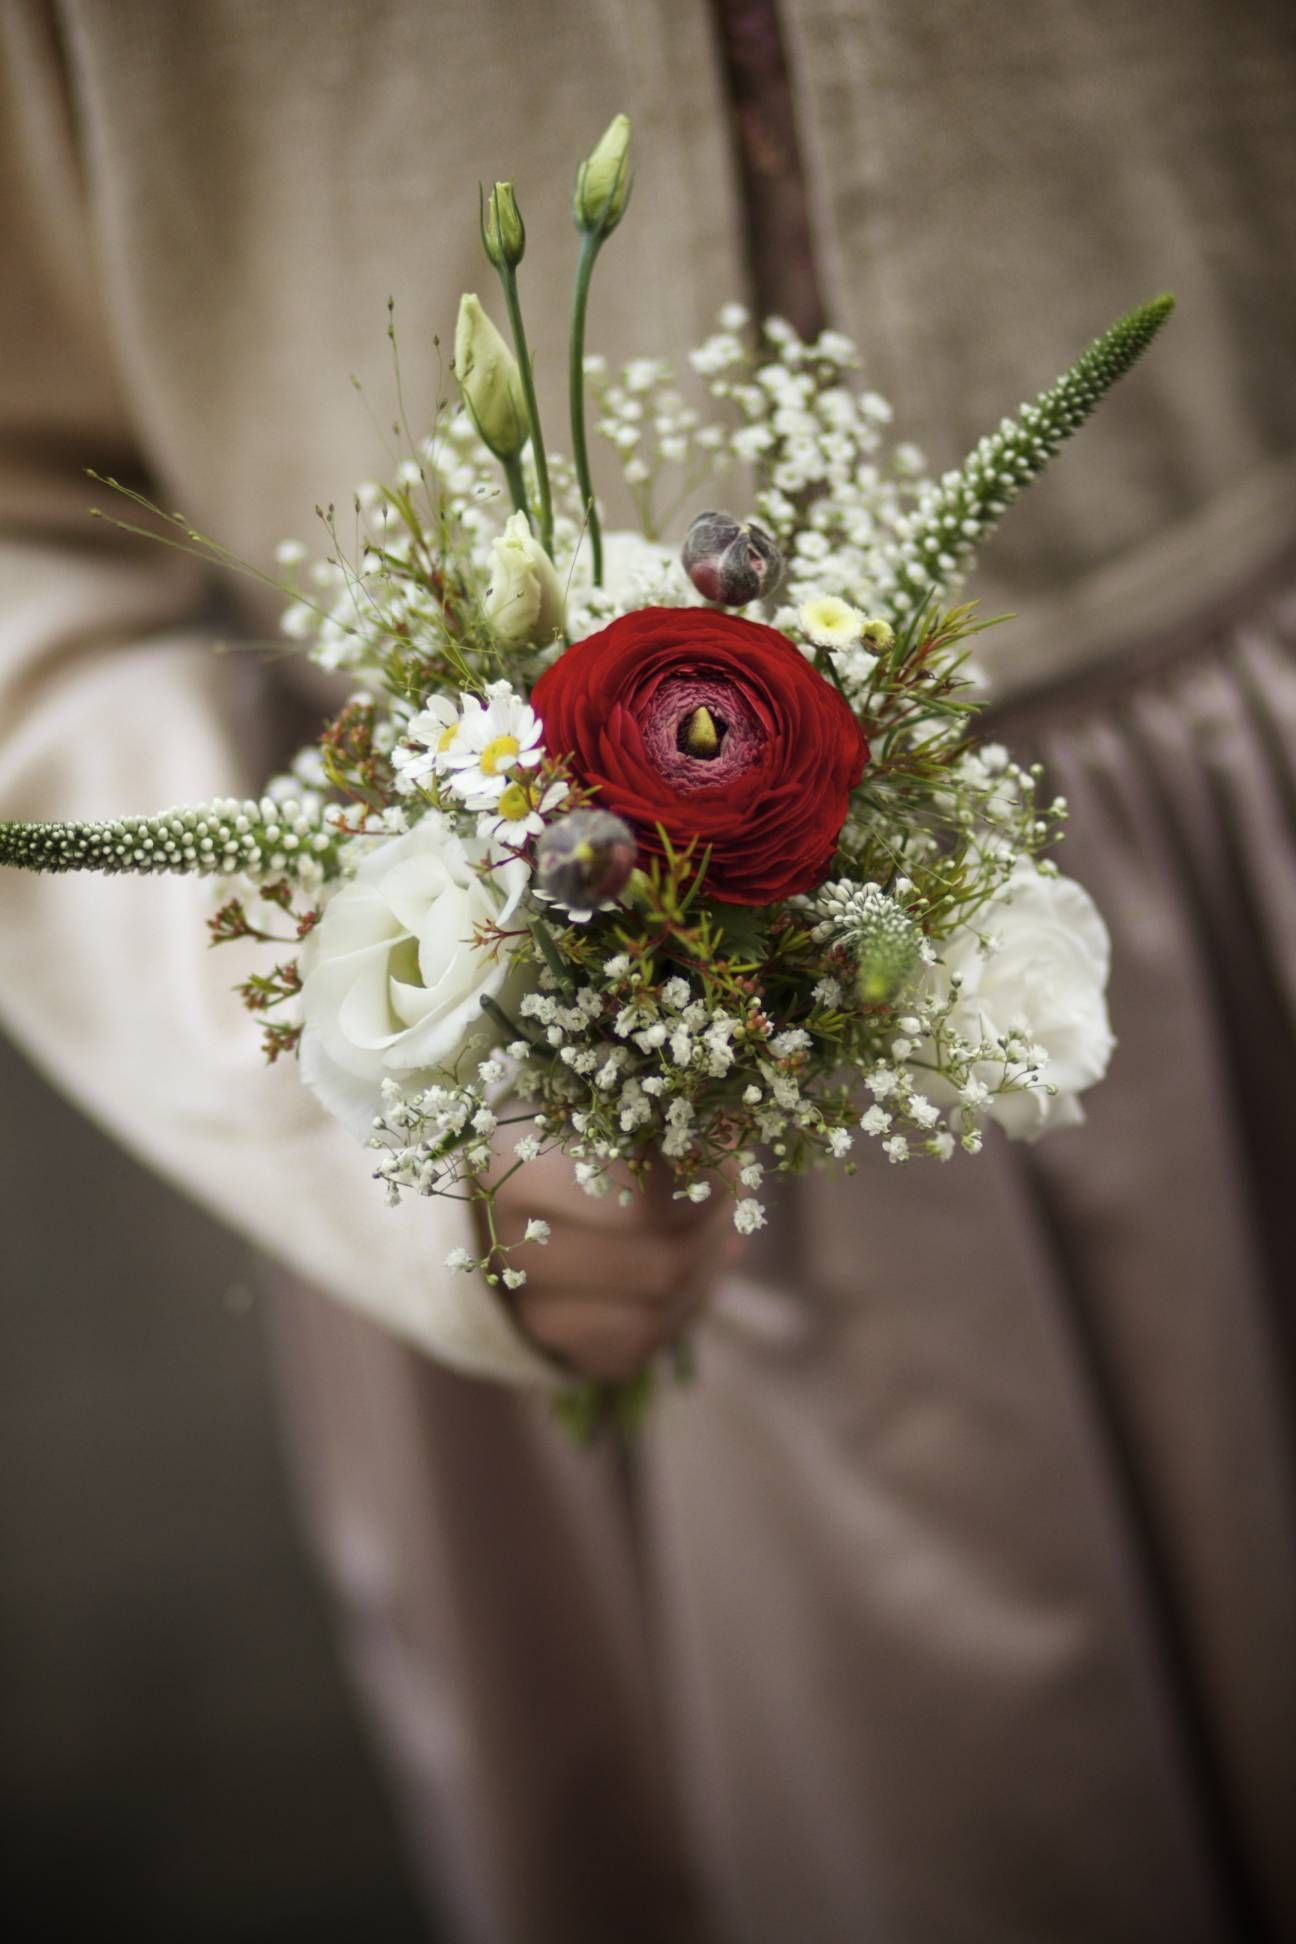 Flower Girl Flowers For A Crisp Misty Atmospheric Wedding Day In